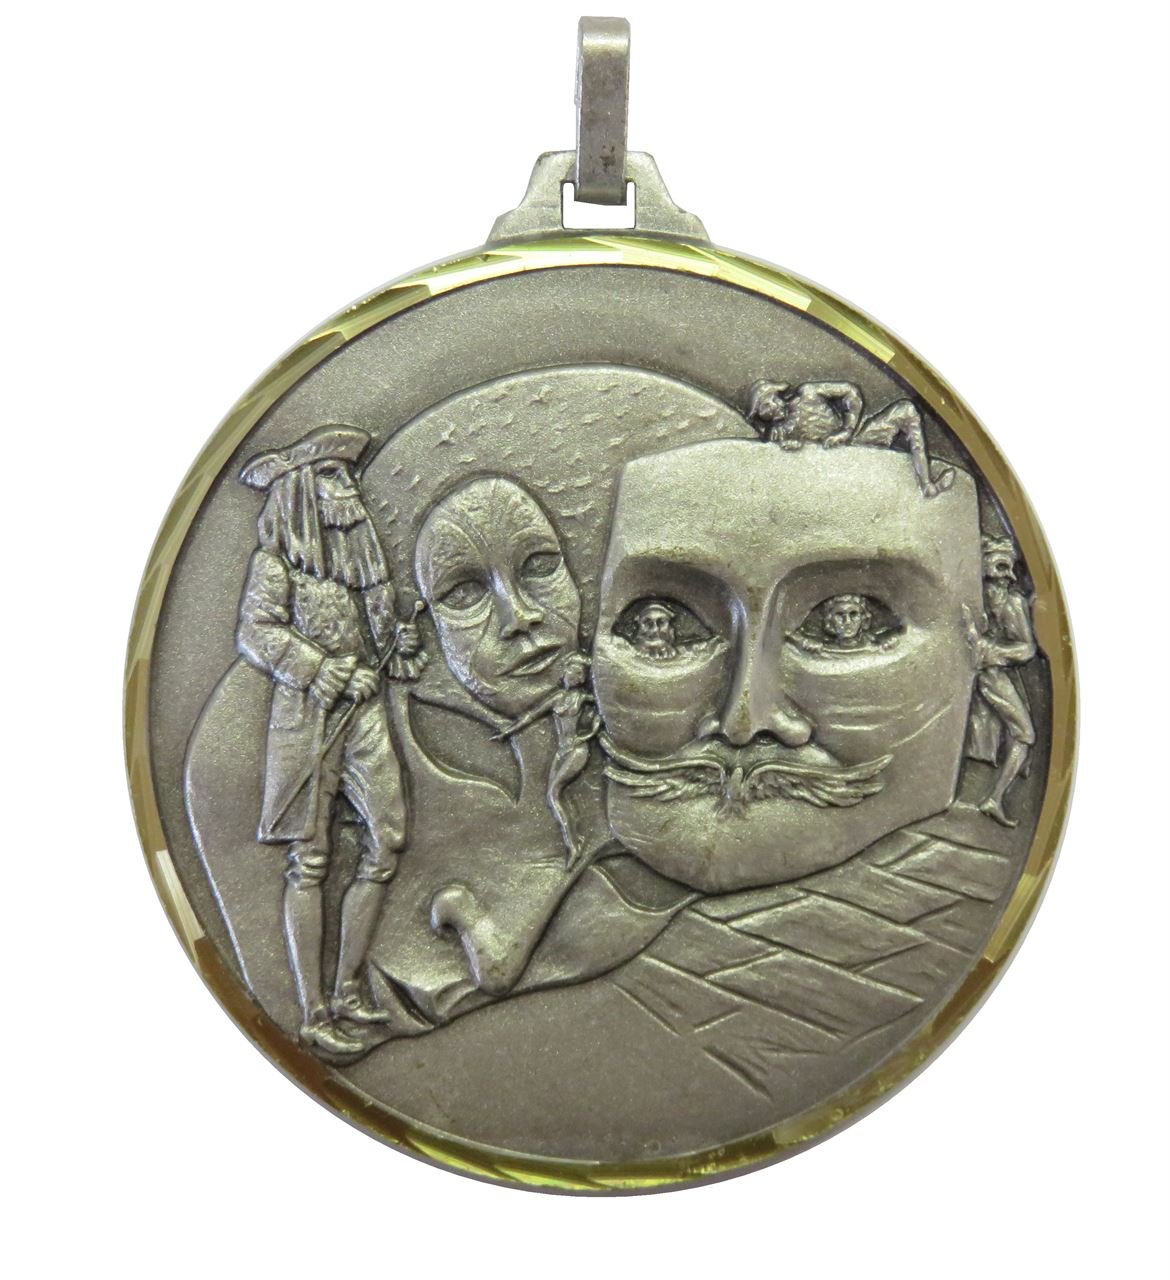 Silver Faceted Drama Medal (size: 52mm) - 234F